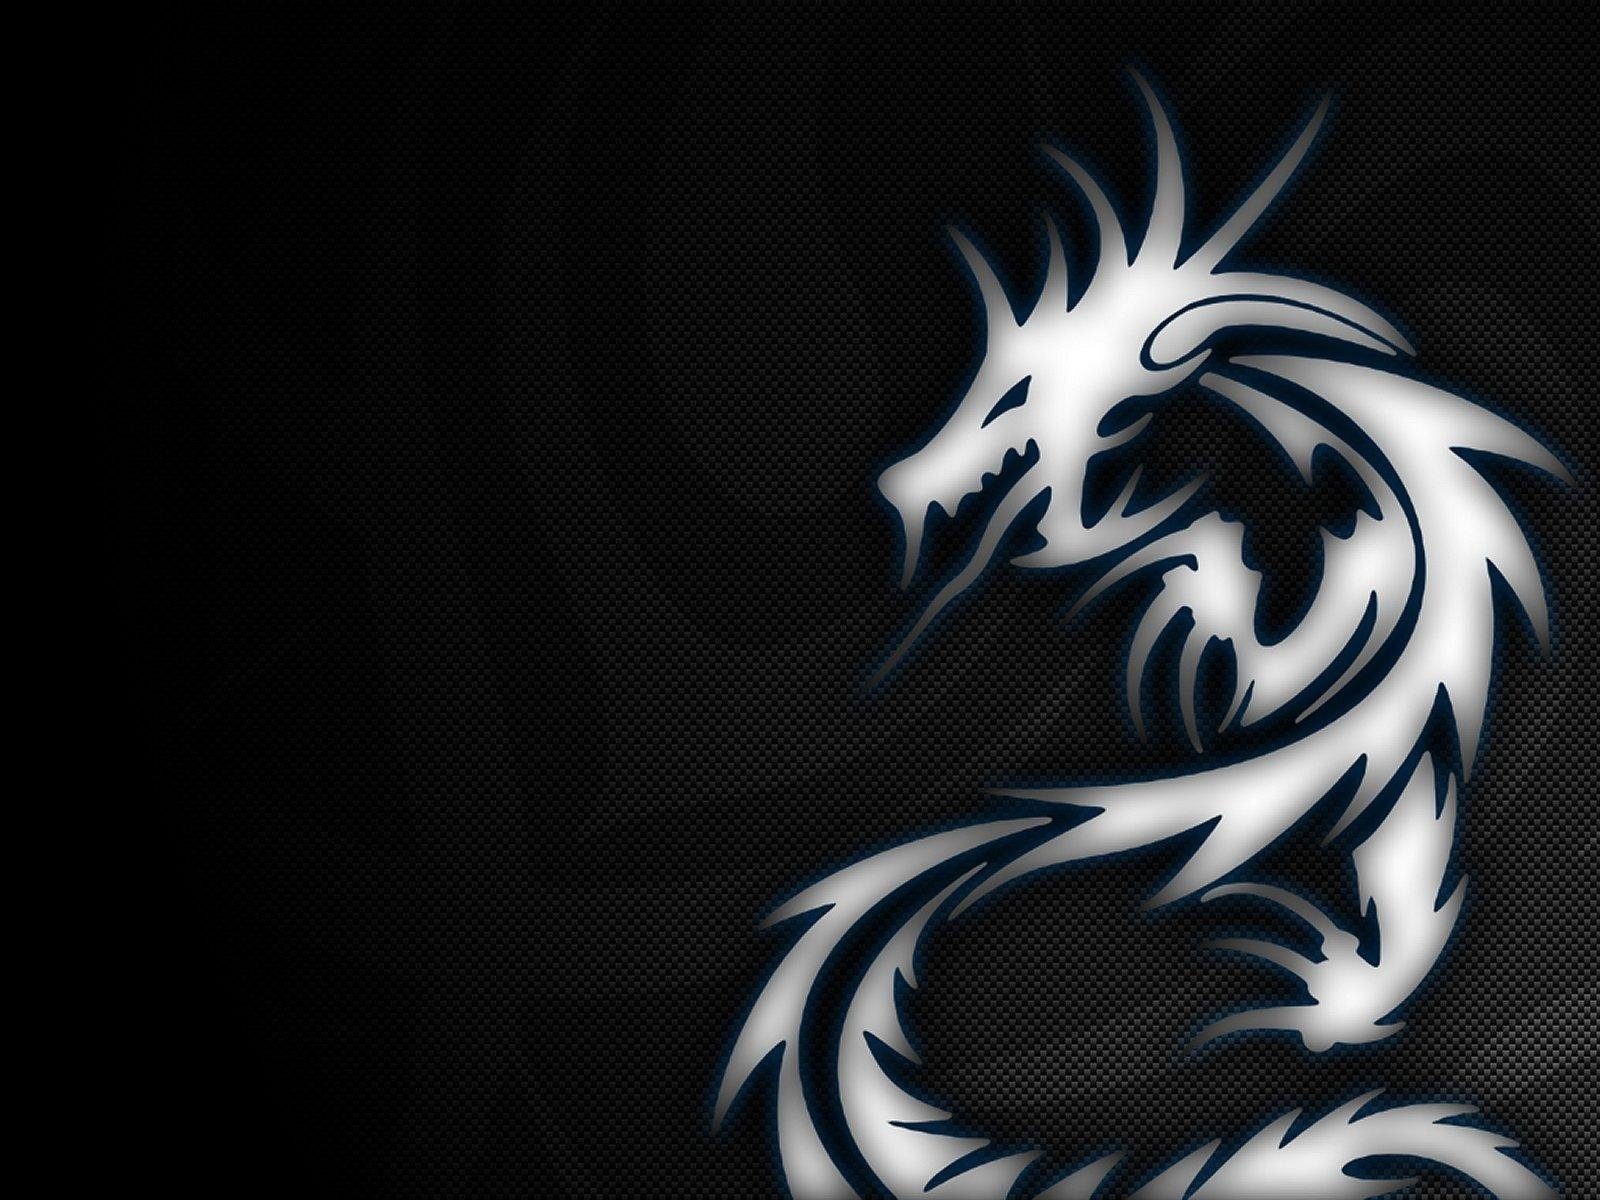 Fantasy - Dragon  Wallpaper